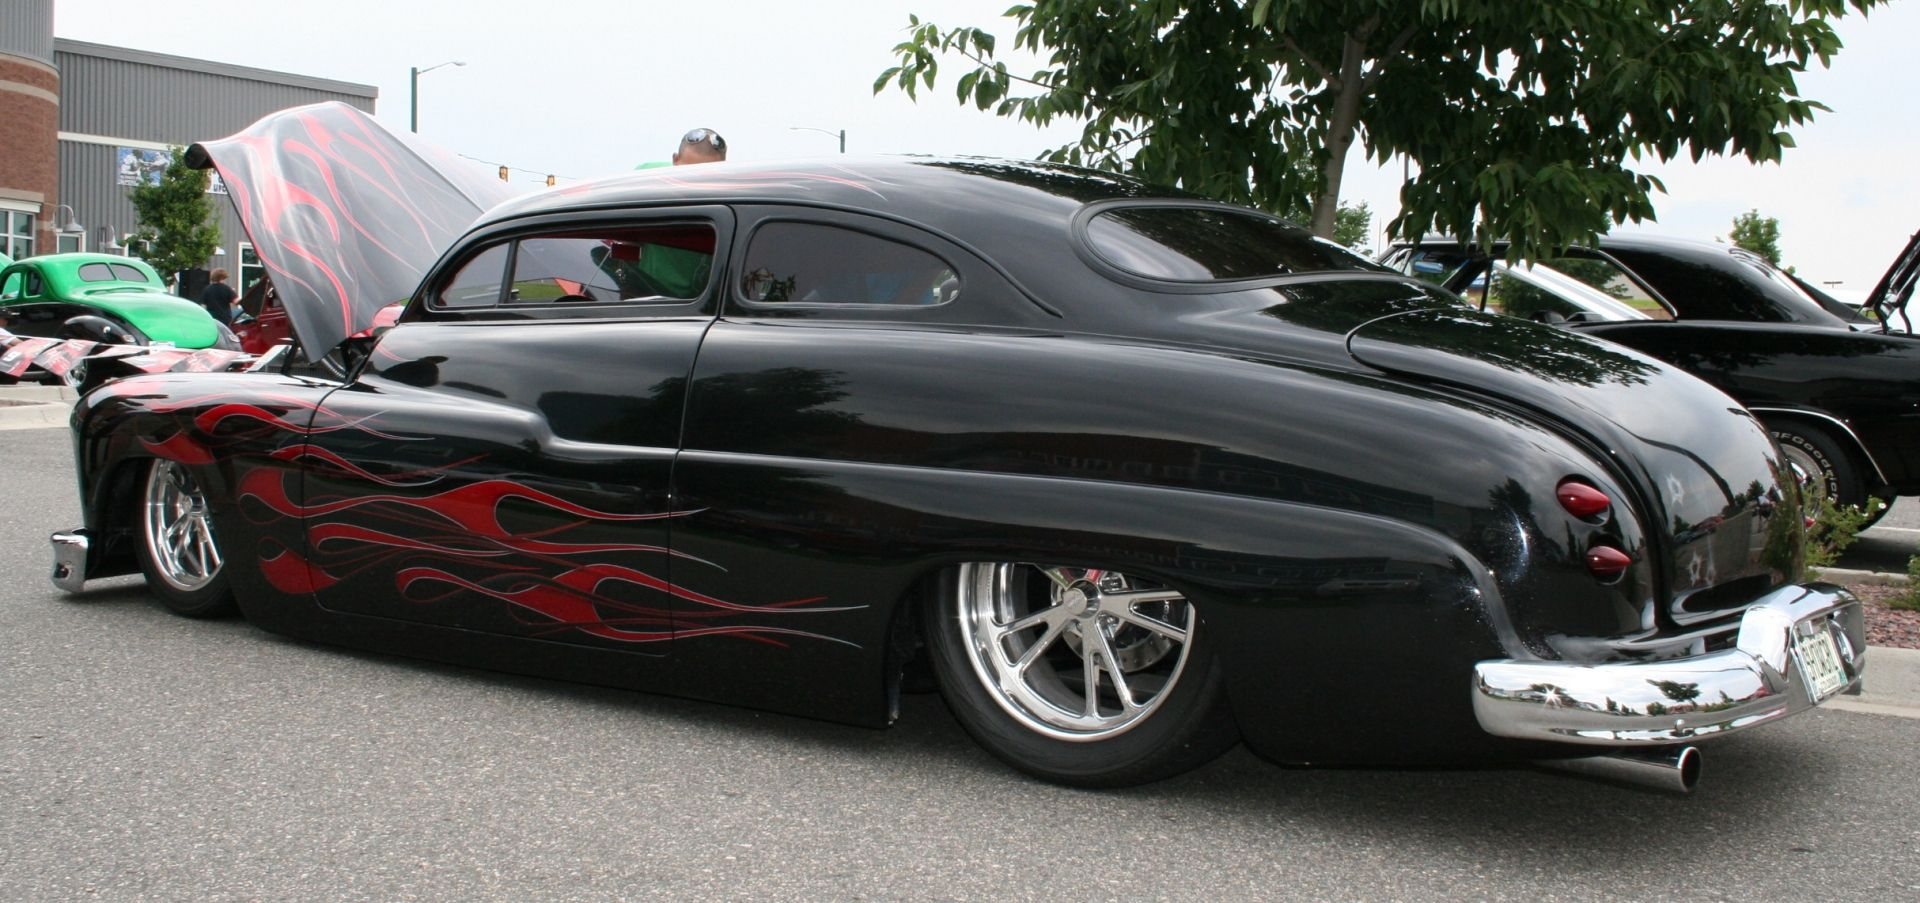 leadsled on FeedYeti.com